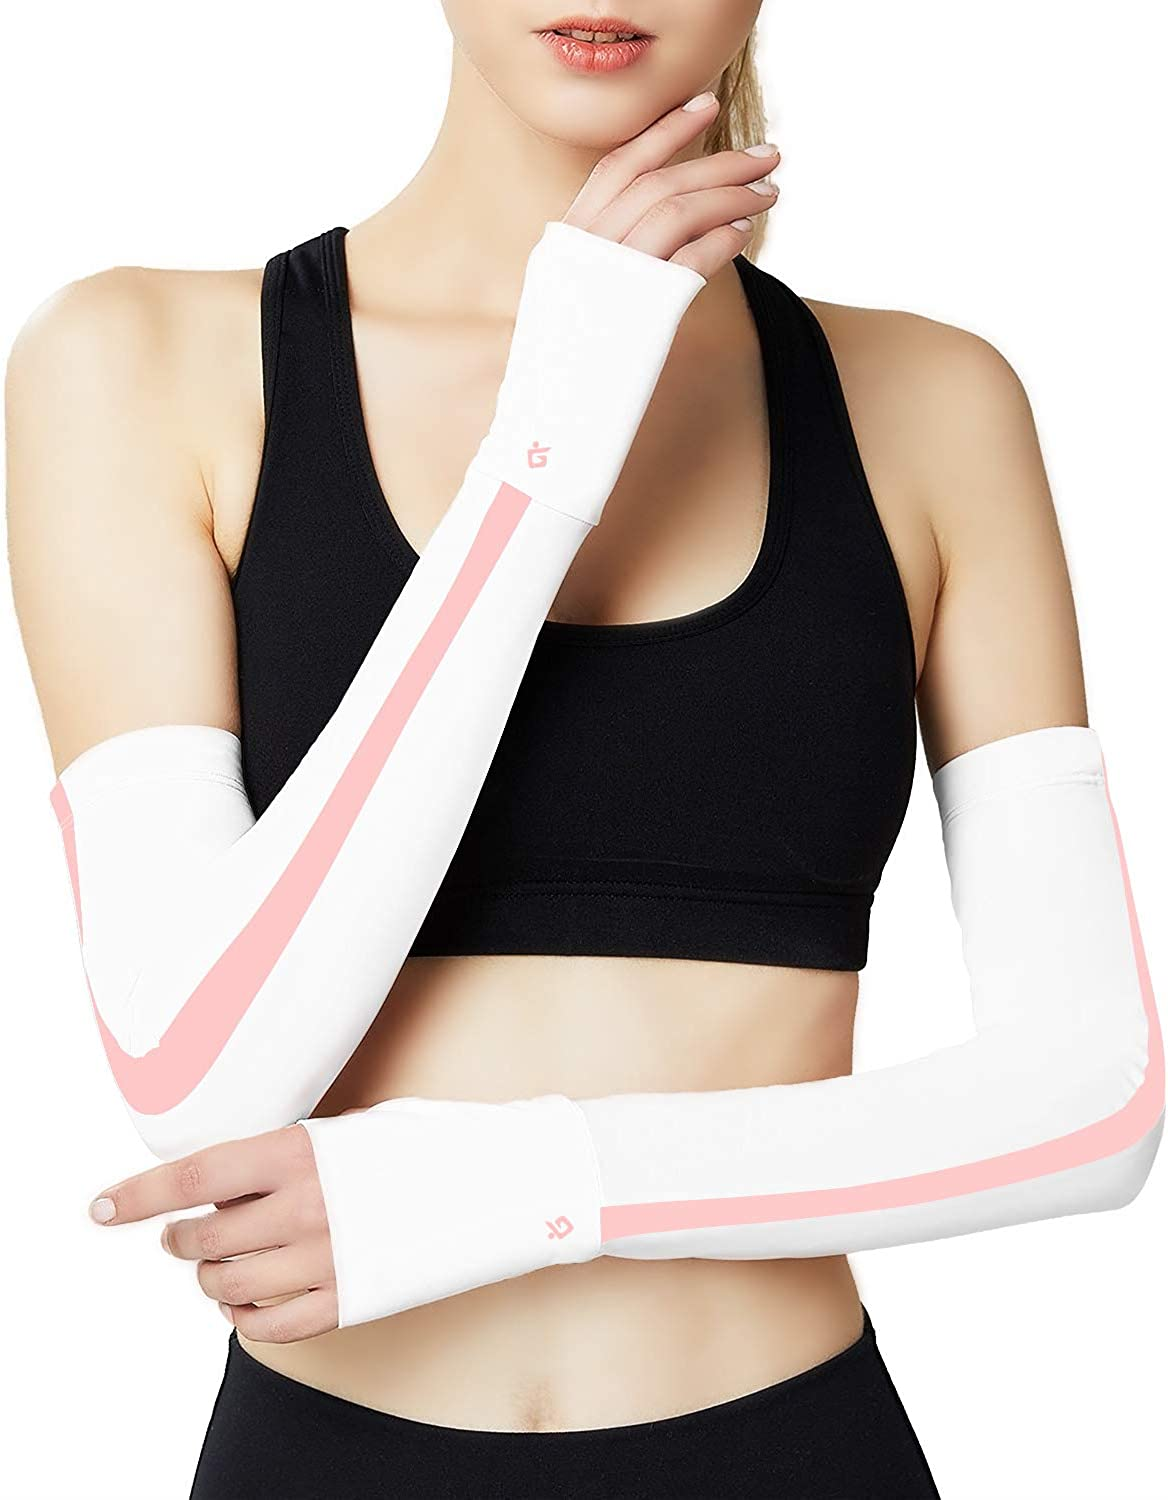 Cooling Arm Sleeves for Women uv Arm Sleeves for Cycling running Sports Golf